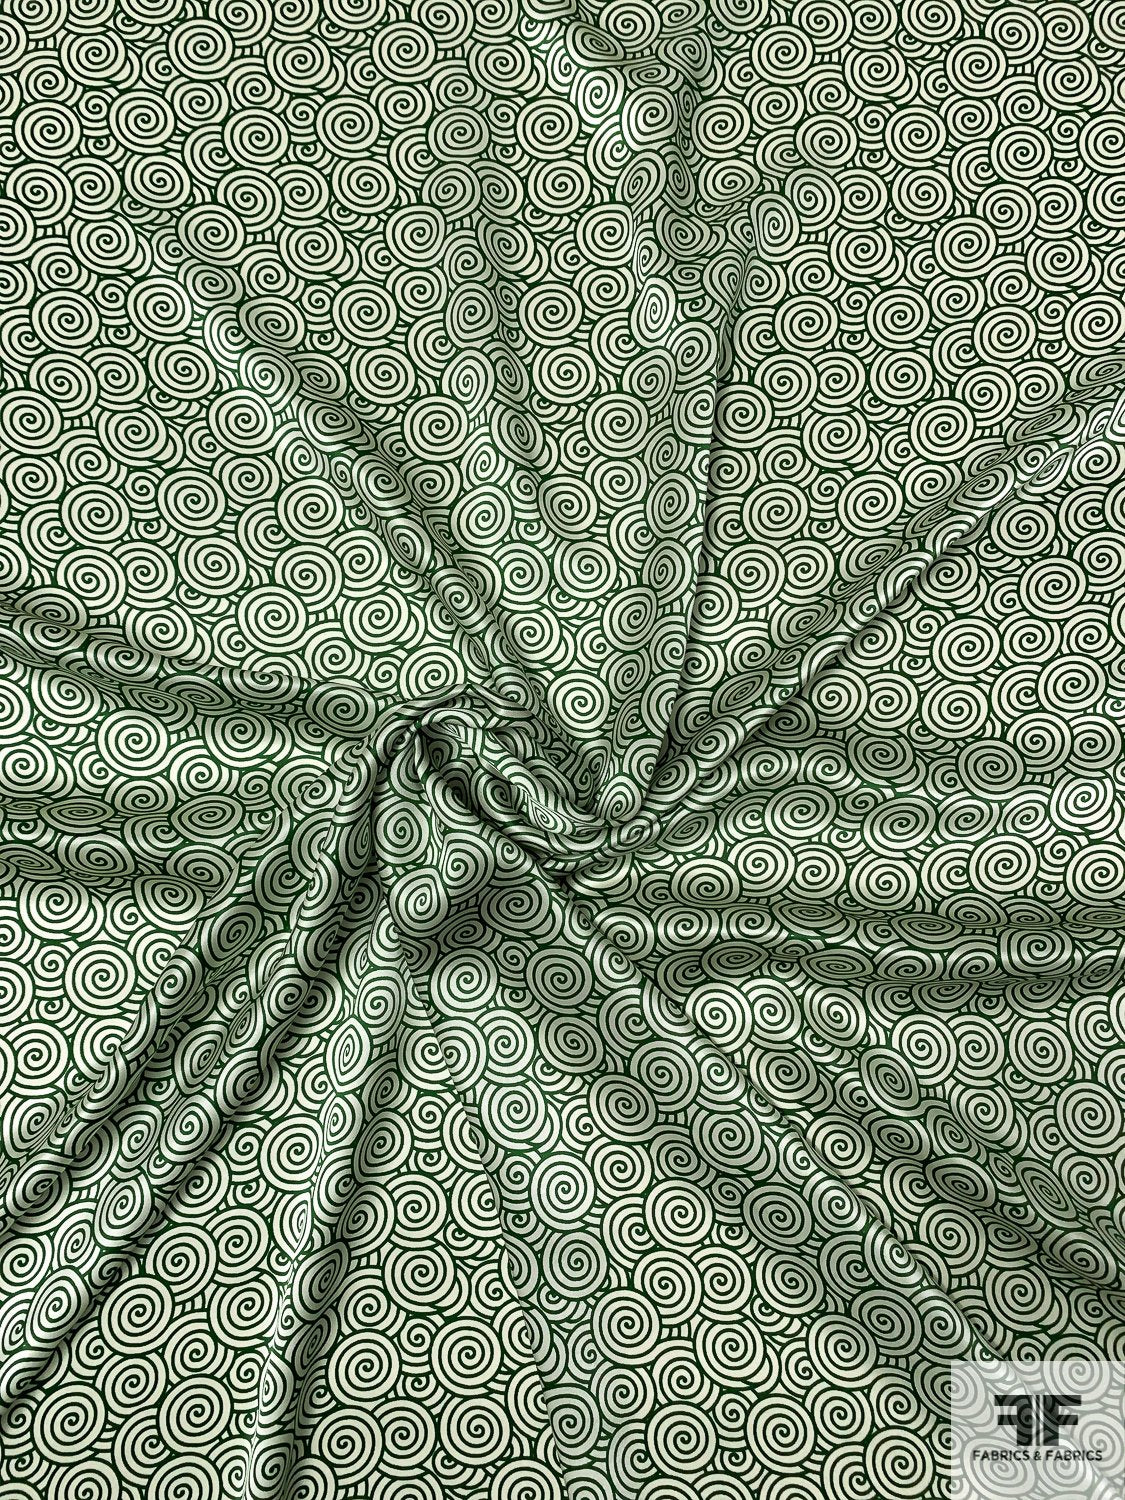 Art Deco Snail-Swirls Printed Silk Charmeuse - Green / Off-White